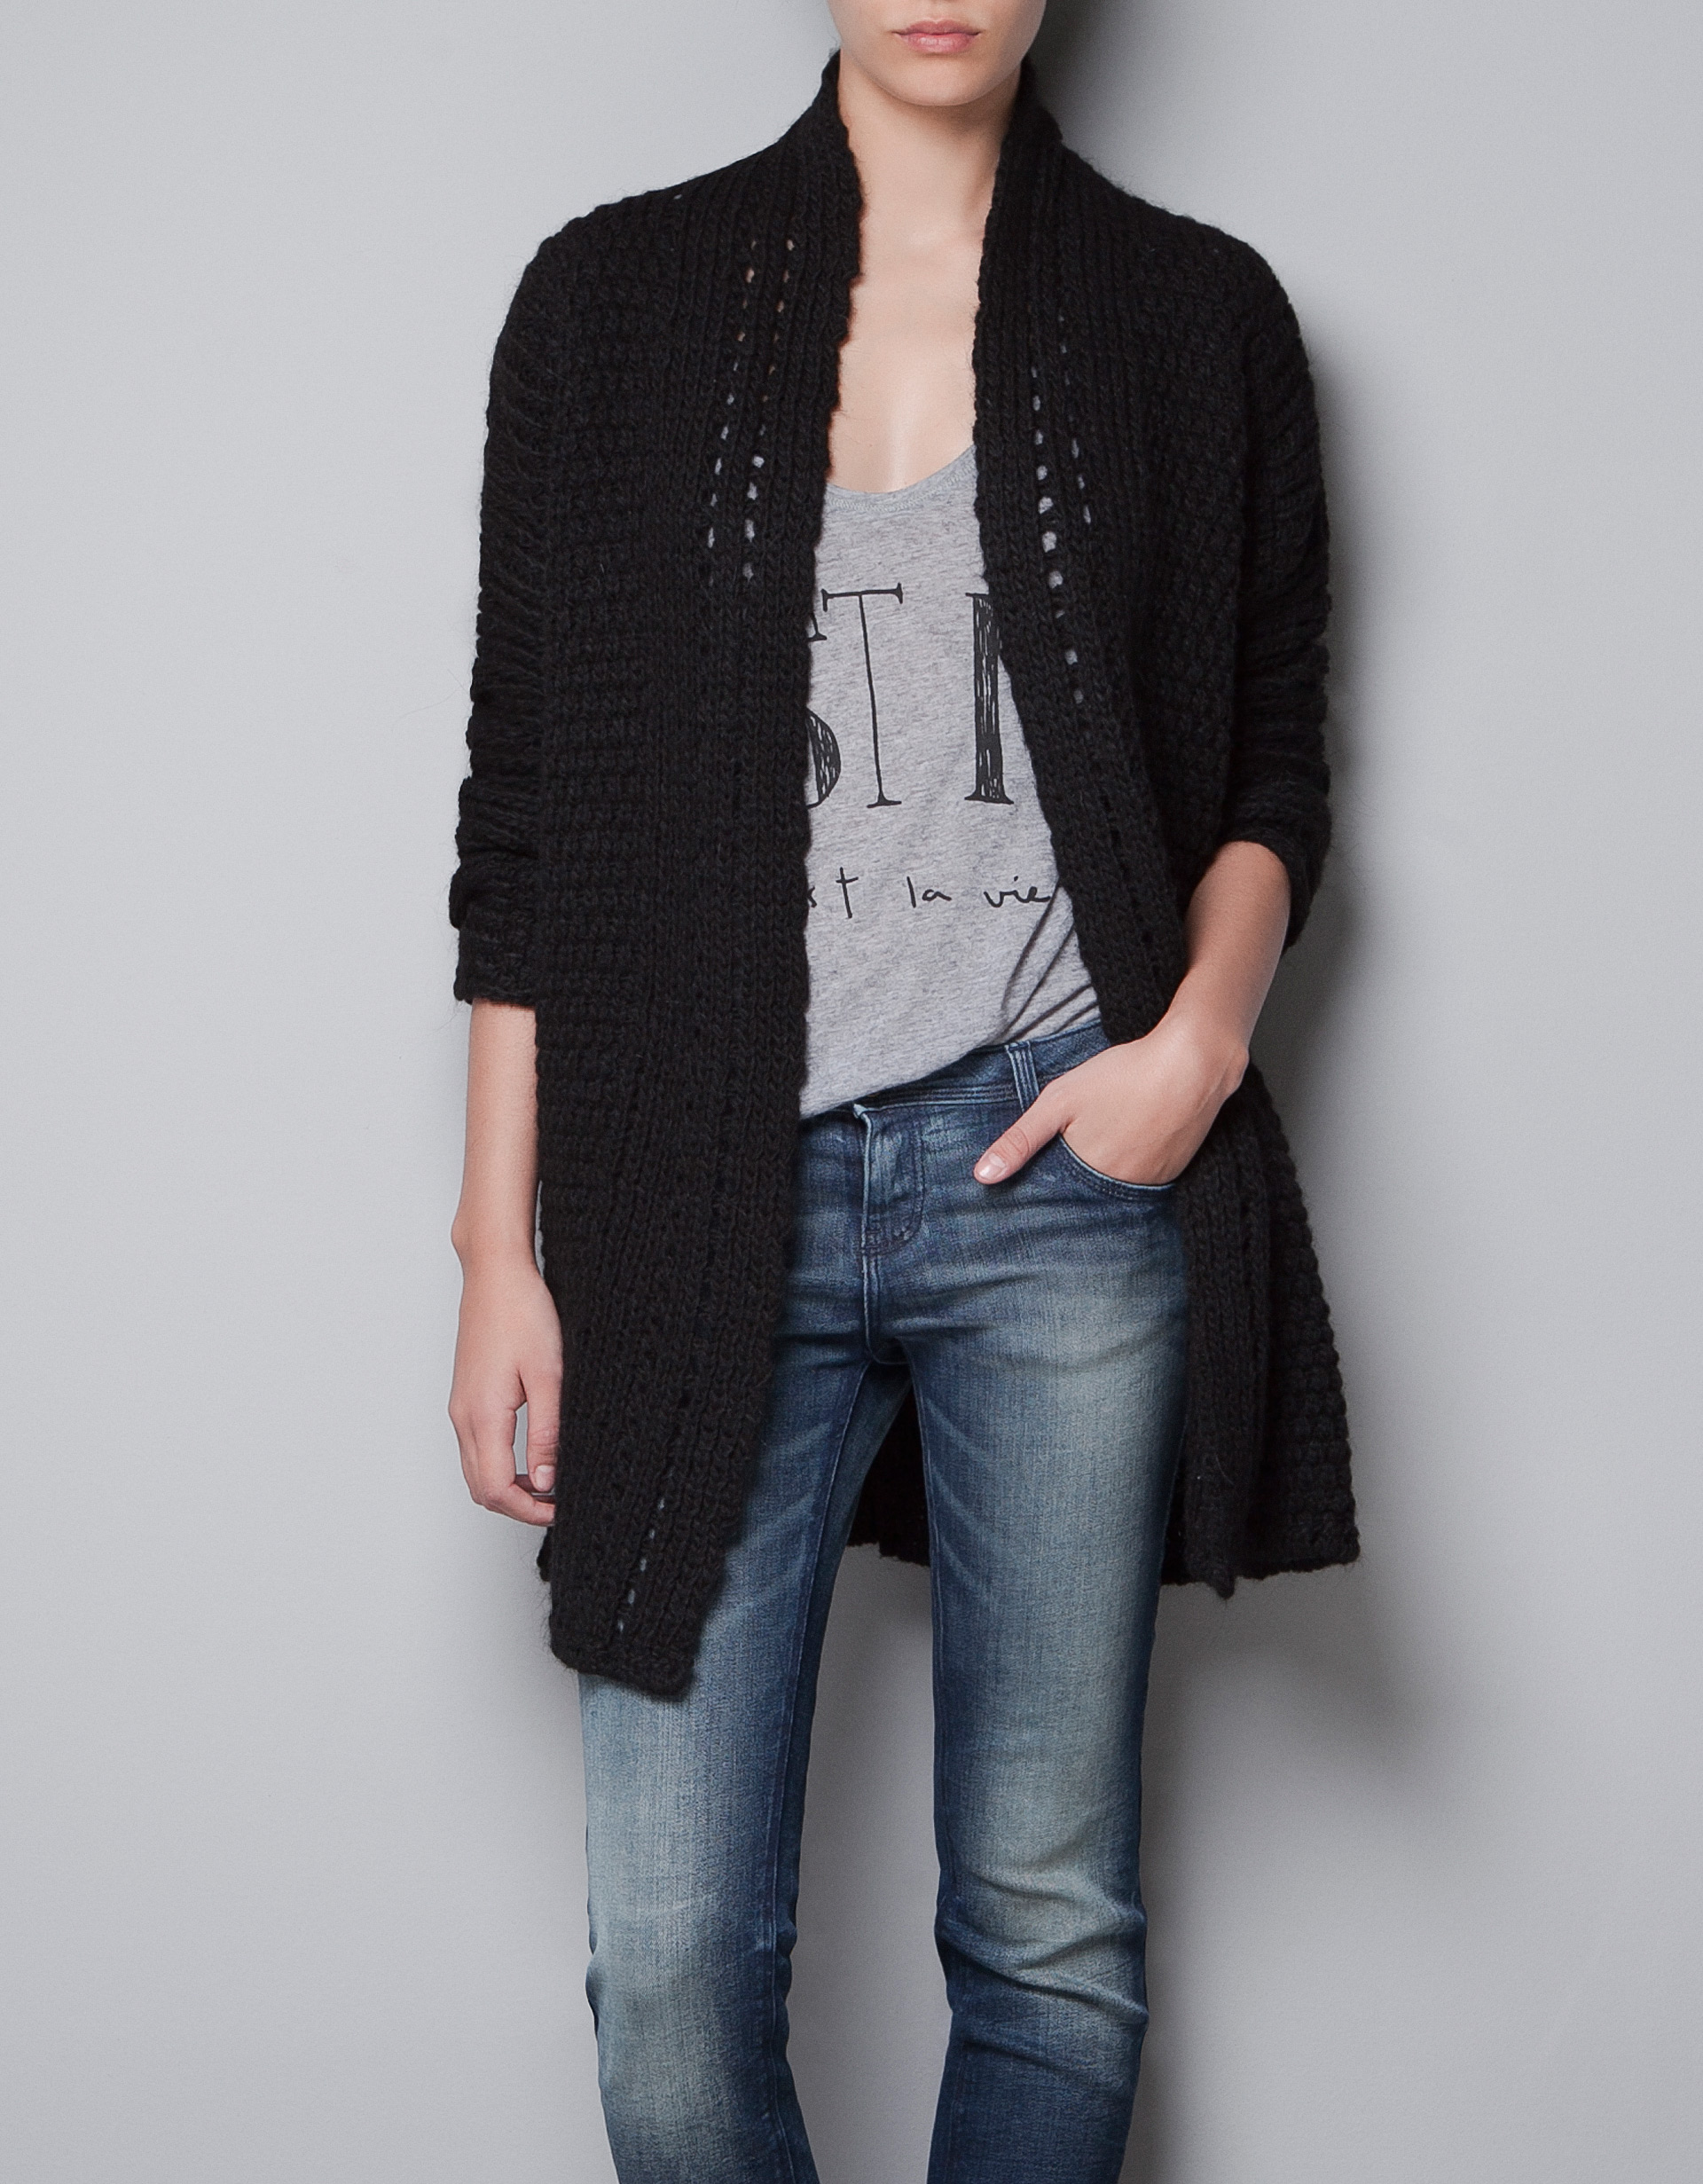 black-knitted-cardigan_thecolorharmony